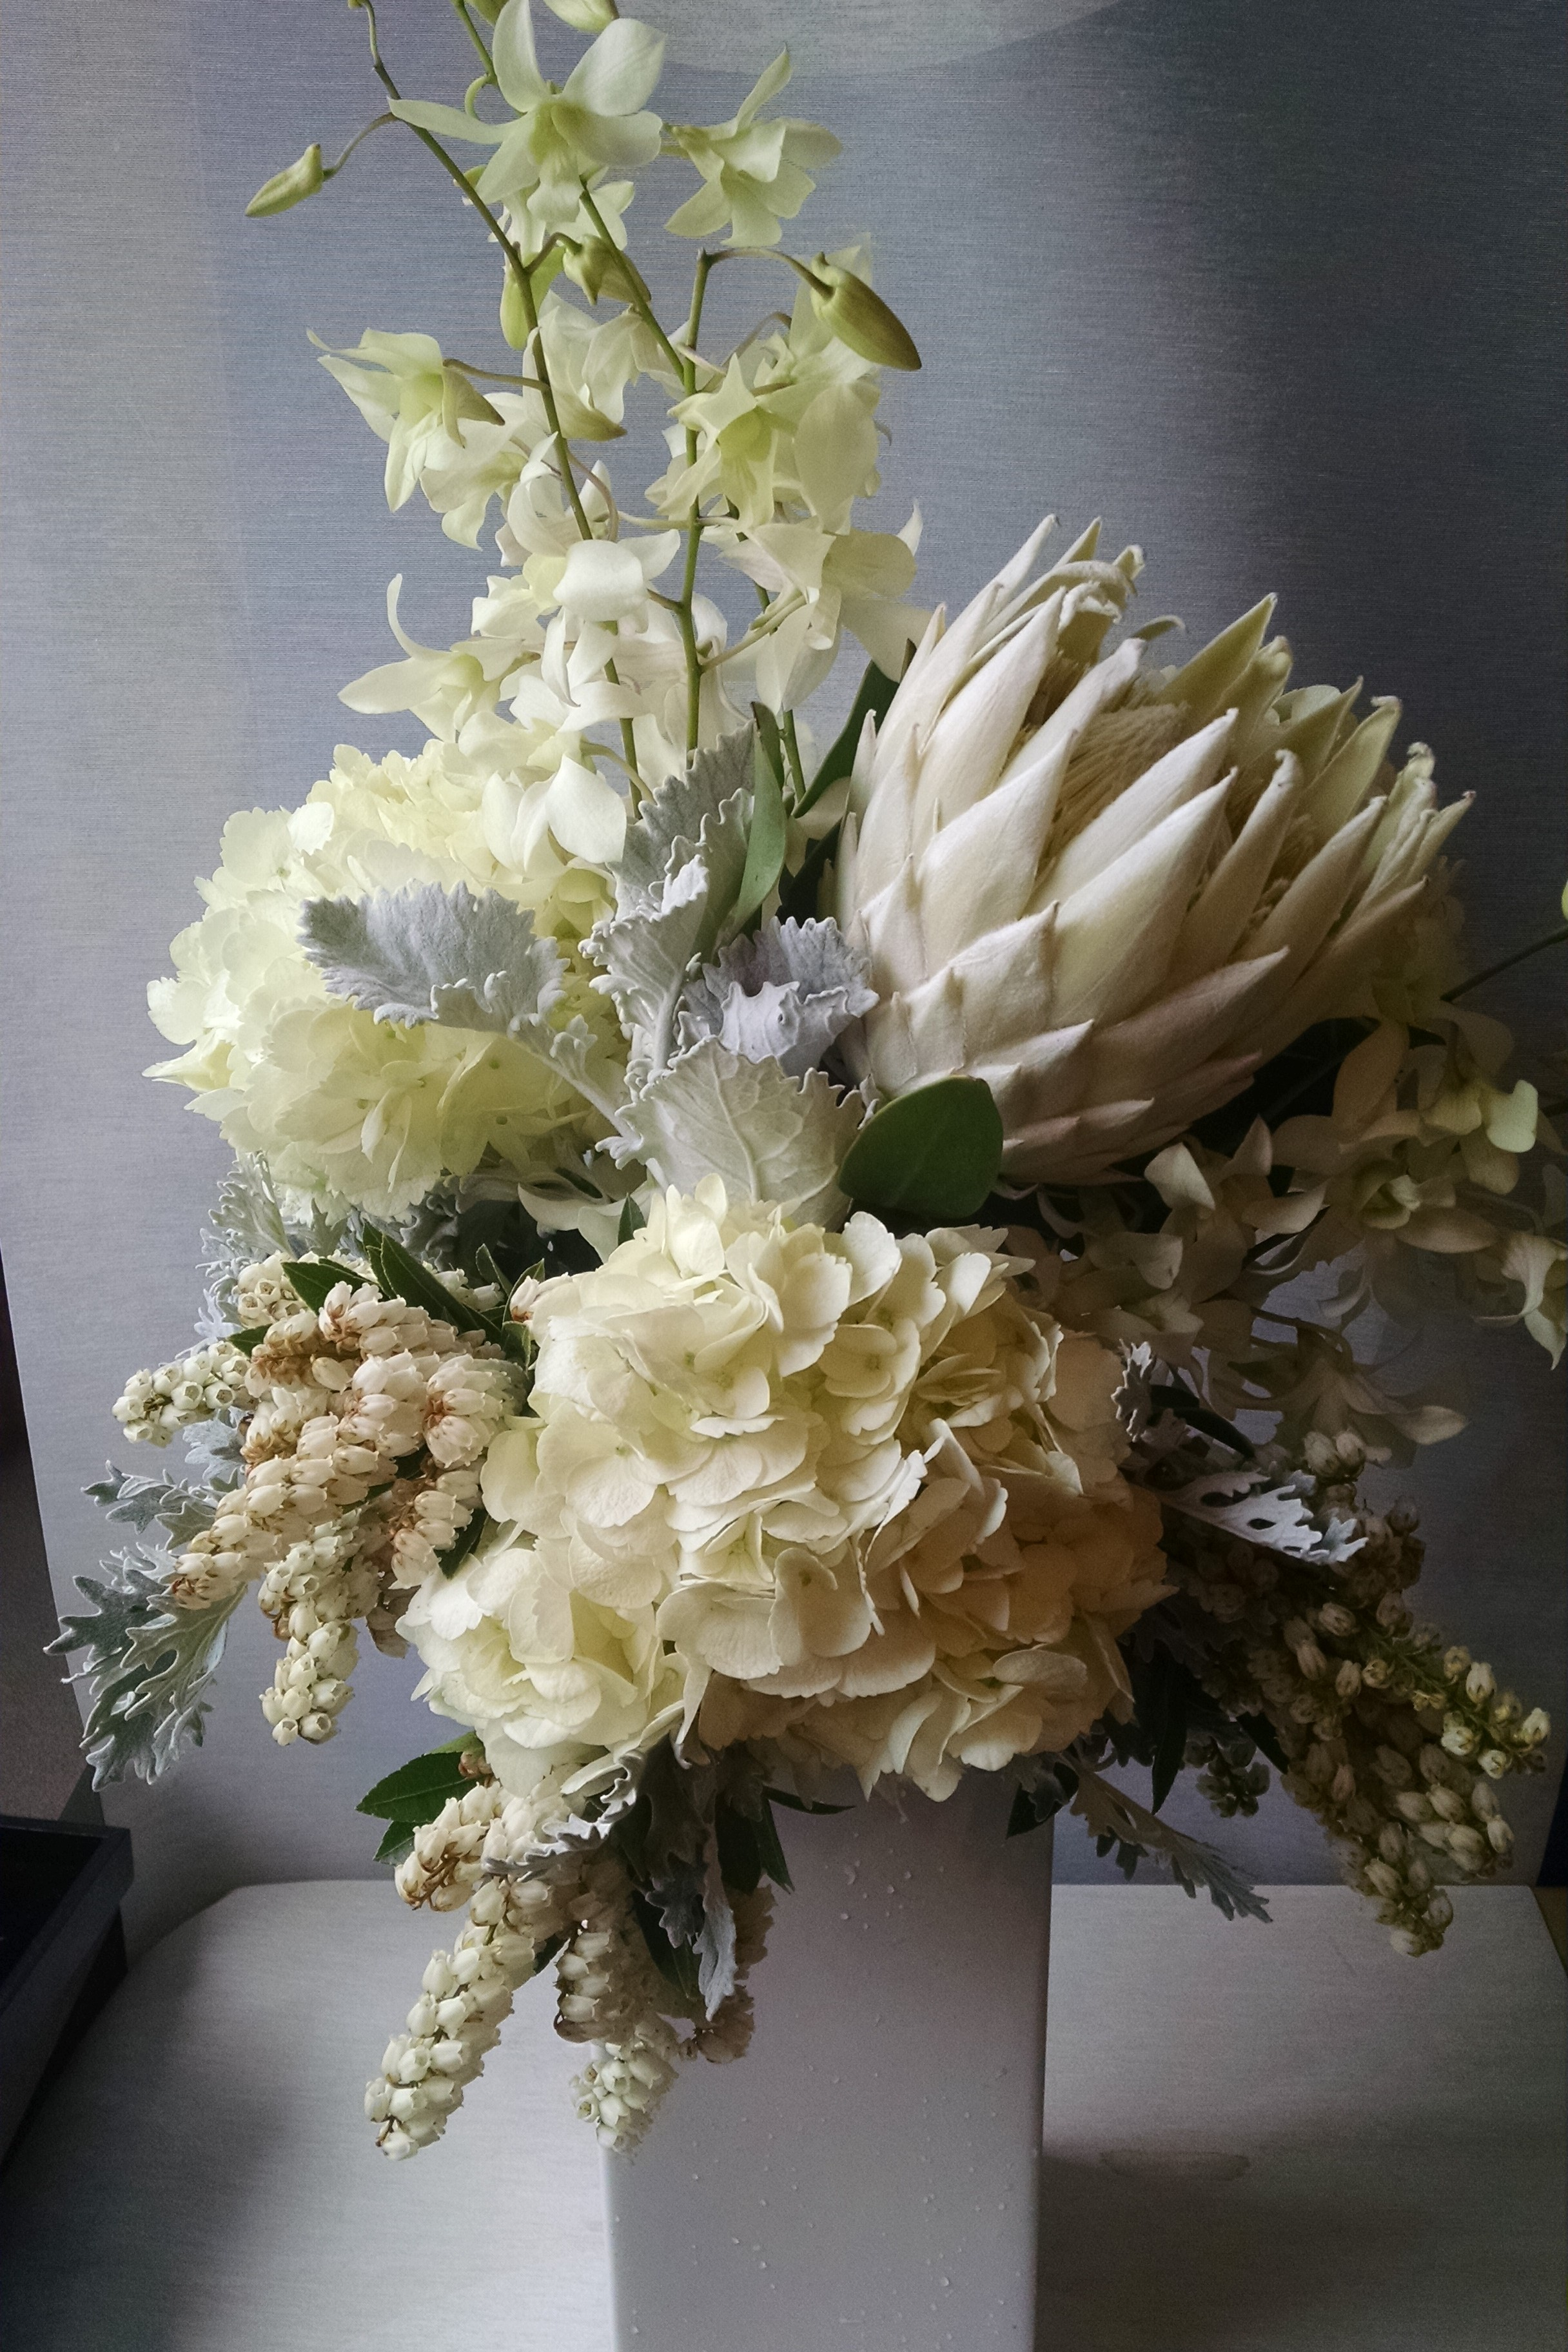 Minneapolis twin cities downtown florist flower delivery event minneapolis twin cities downtown florist flower delivery event flowers muted tones muted colors mink protea white orchid flowers tall flower mightylinksfo